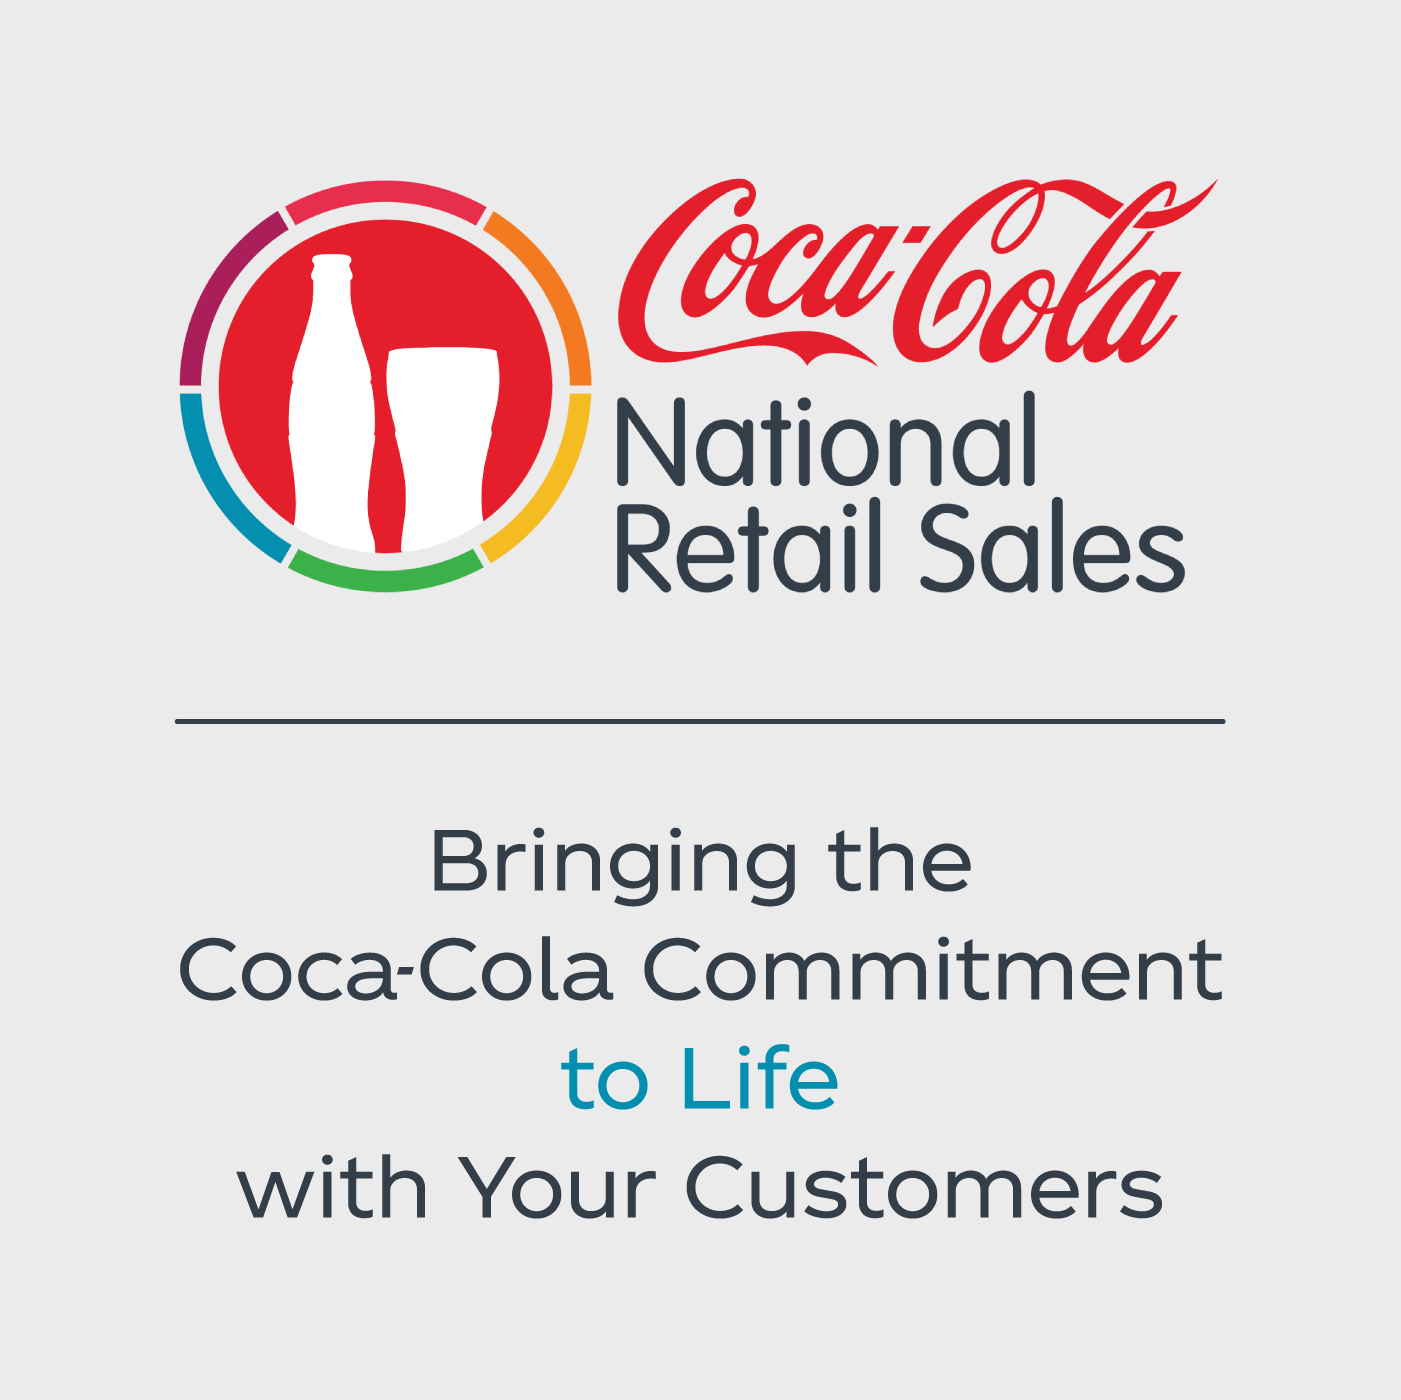 Coca-Cola NRS: Bringing the Coca-Cola Commitment to Life with Your